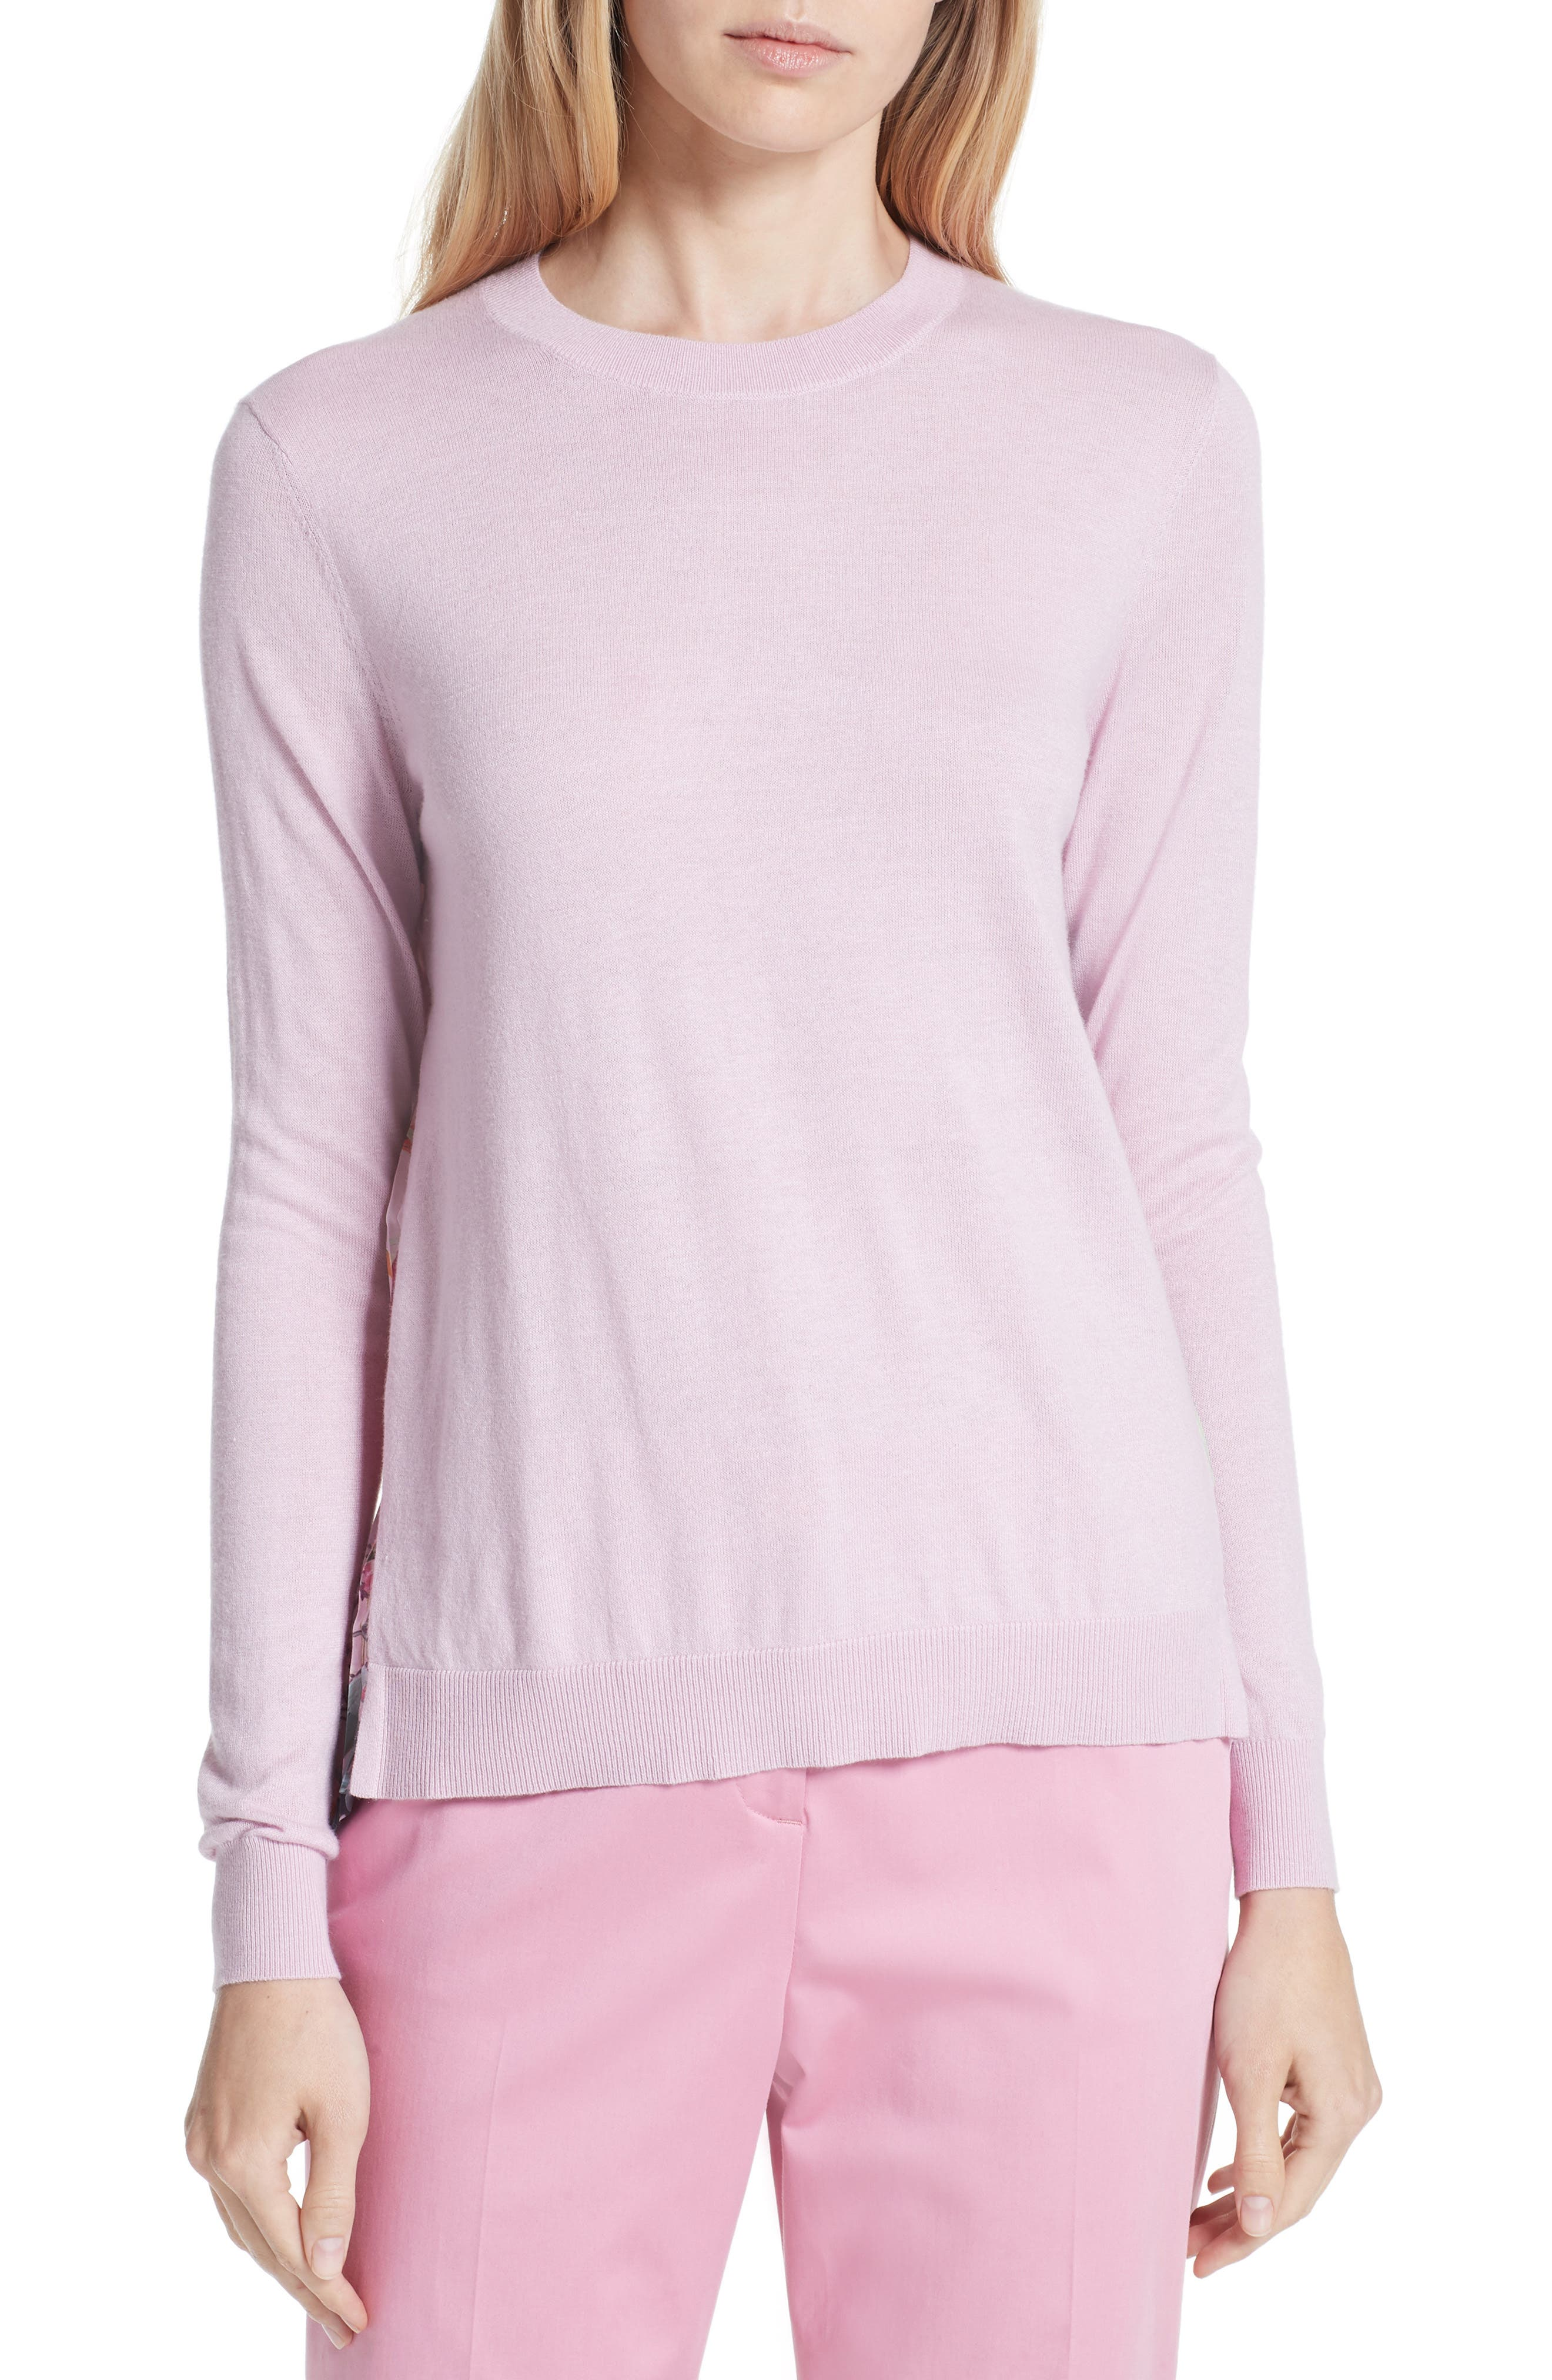 Kaleese Serenity Pleat Back Silk Cotton Sweater,                         Main,                         color, 531